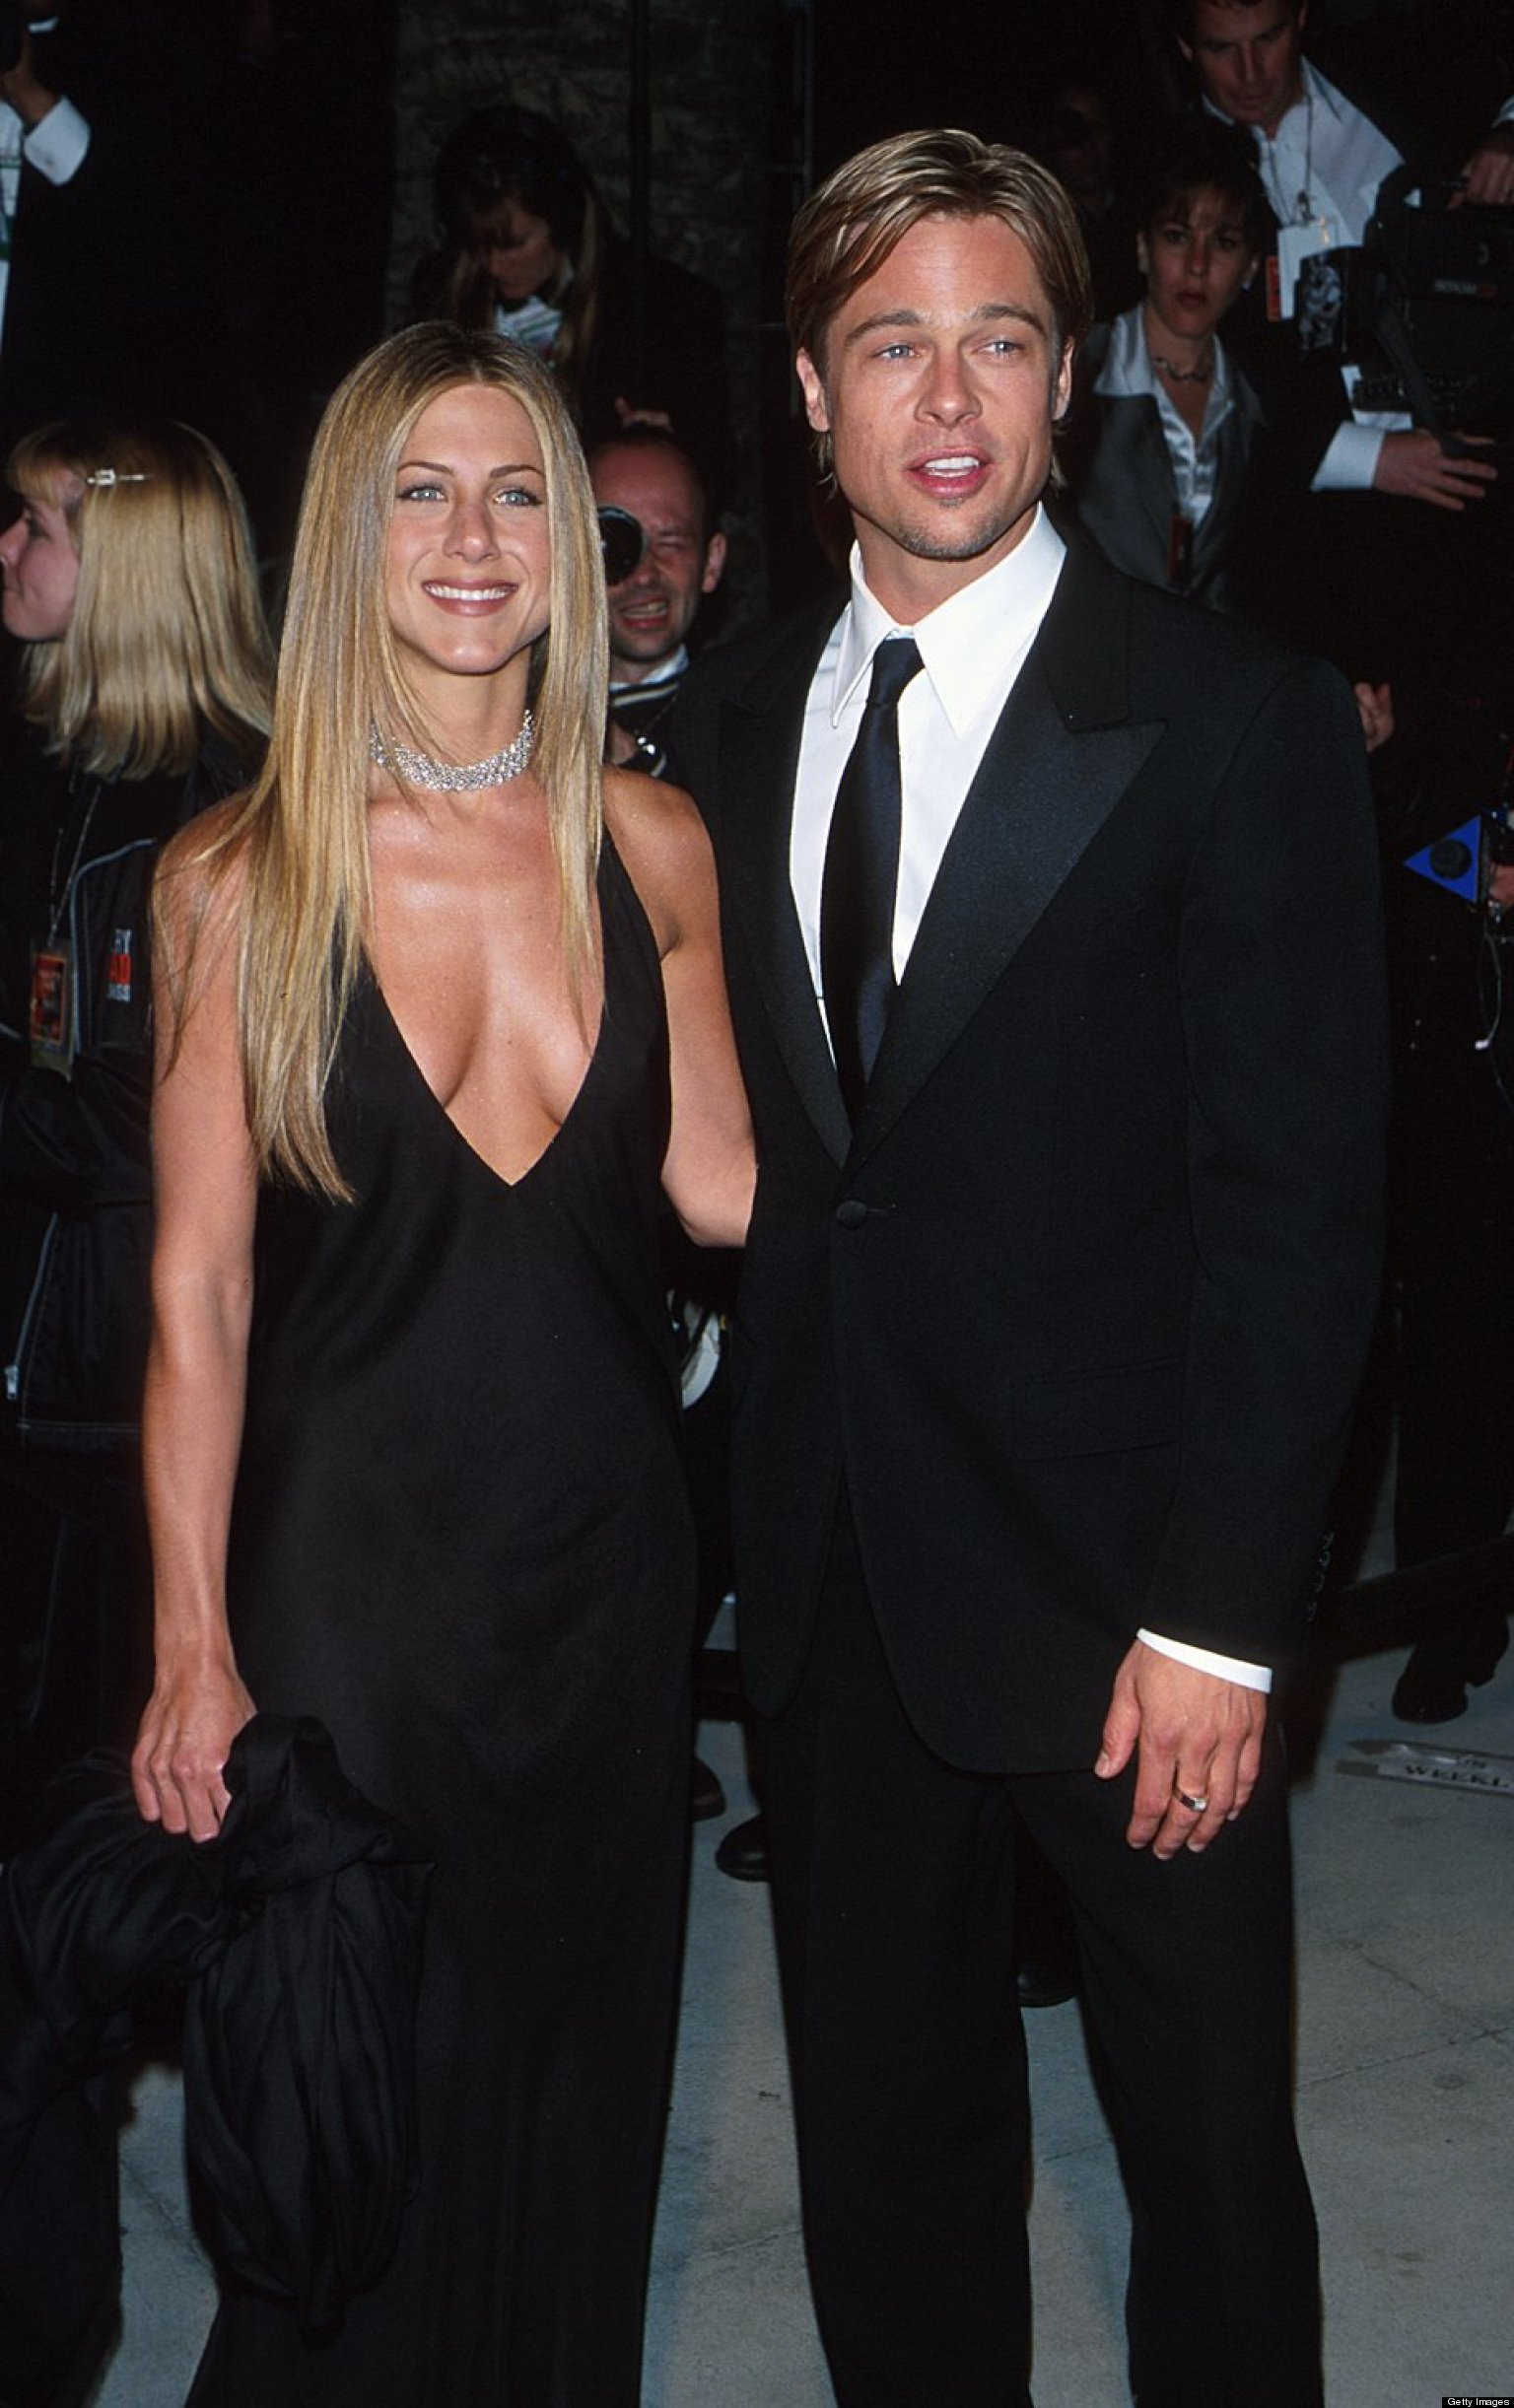 JENNIFER-ANISTON-BRAD-PITT-facebook jpgBrad Pitt And Jennifer Aniston And Angelina Jolie